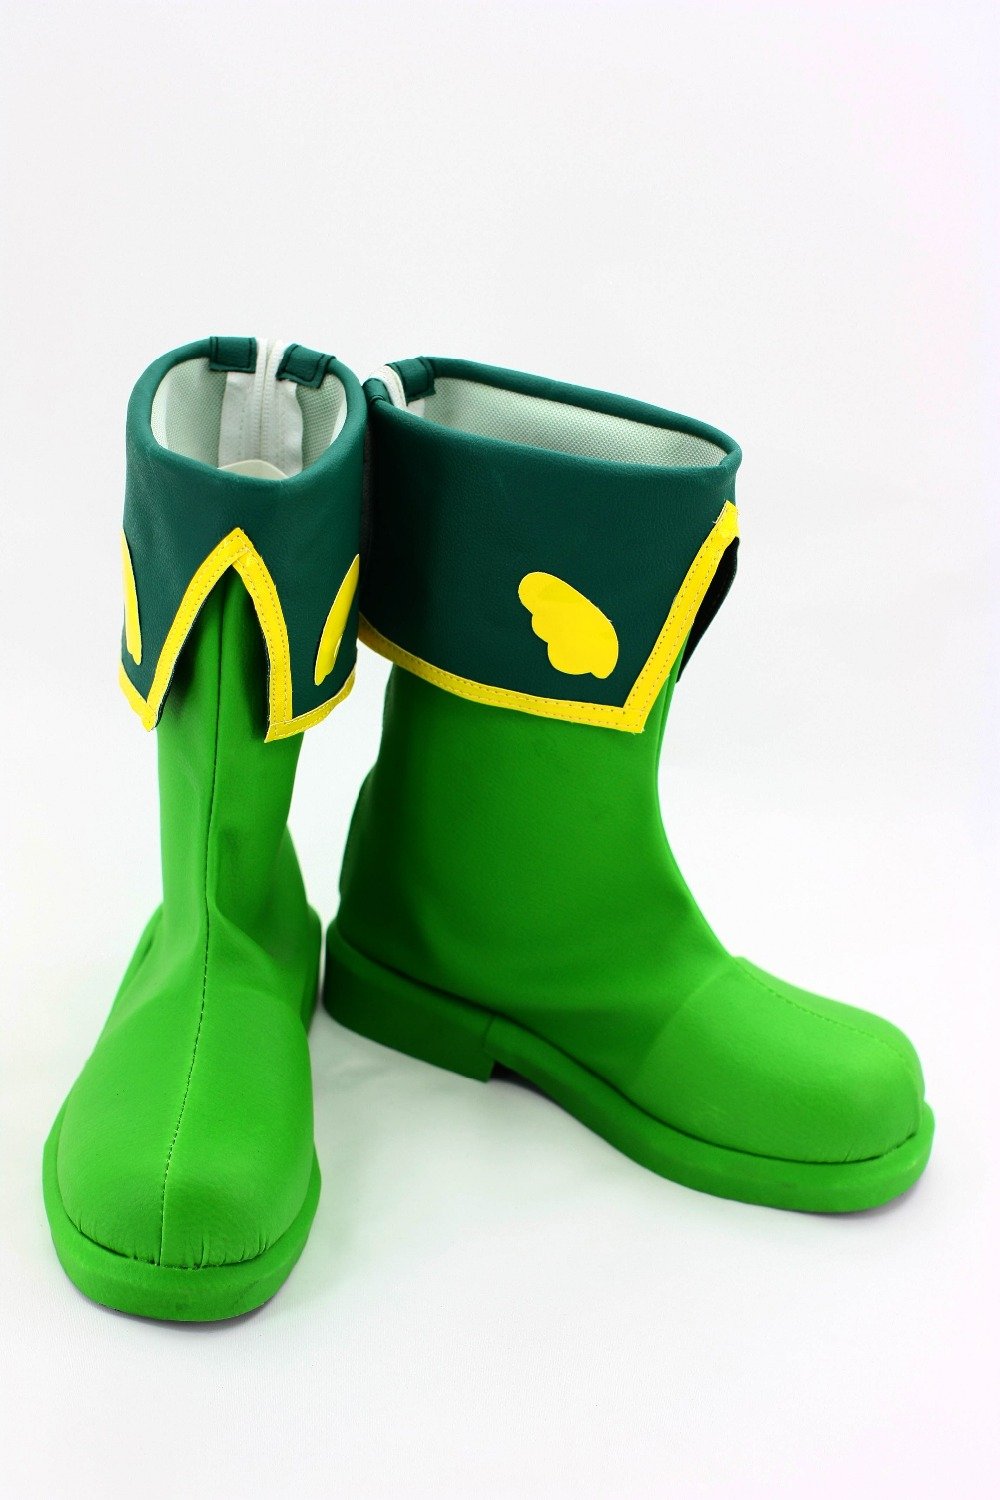 Hot New Japanese Anime Cardcaptor Sakura Cosplay Sakura Shoes With Green Color For Adult